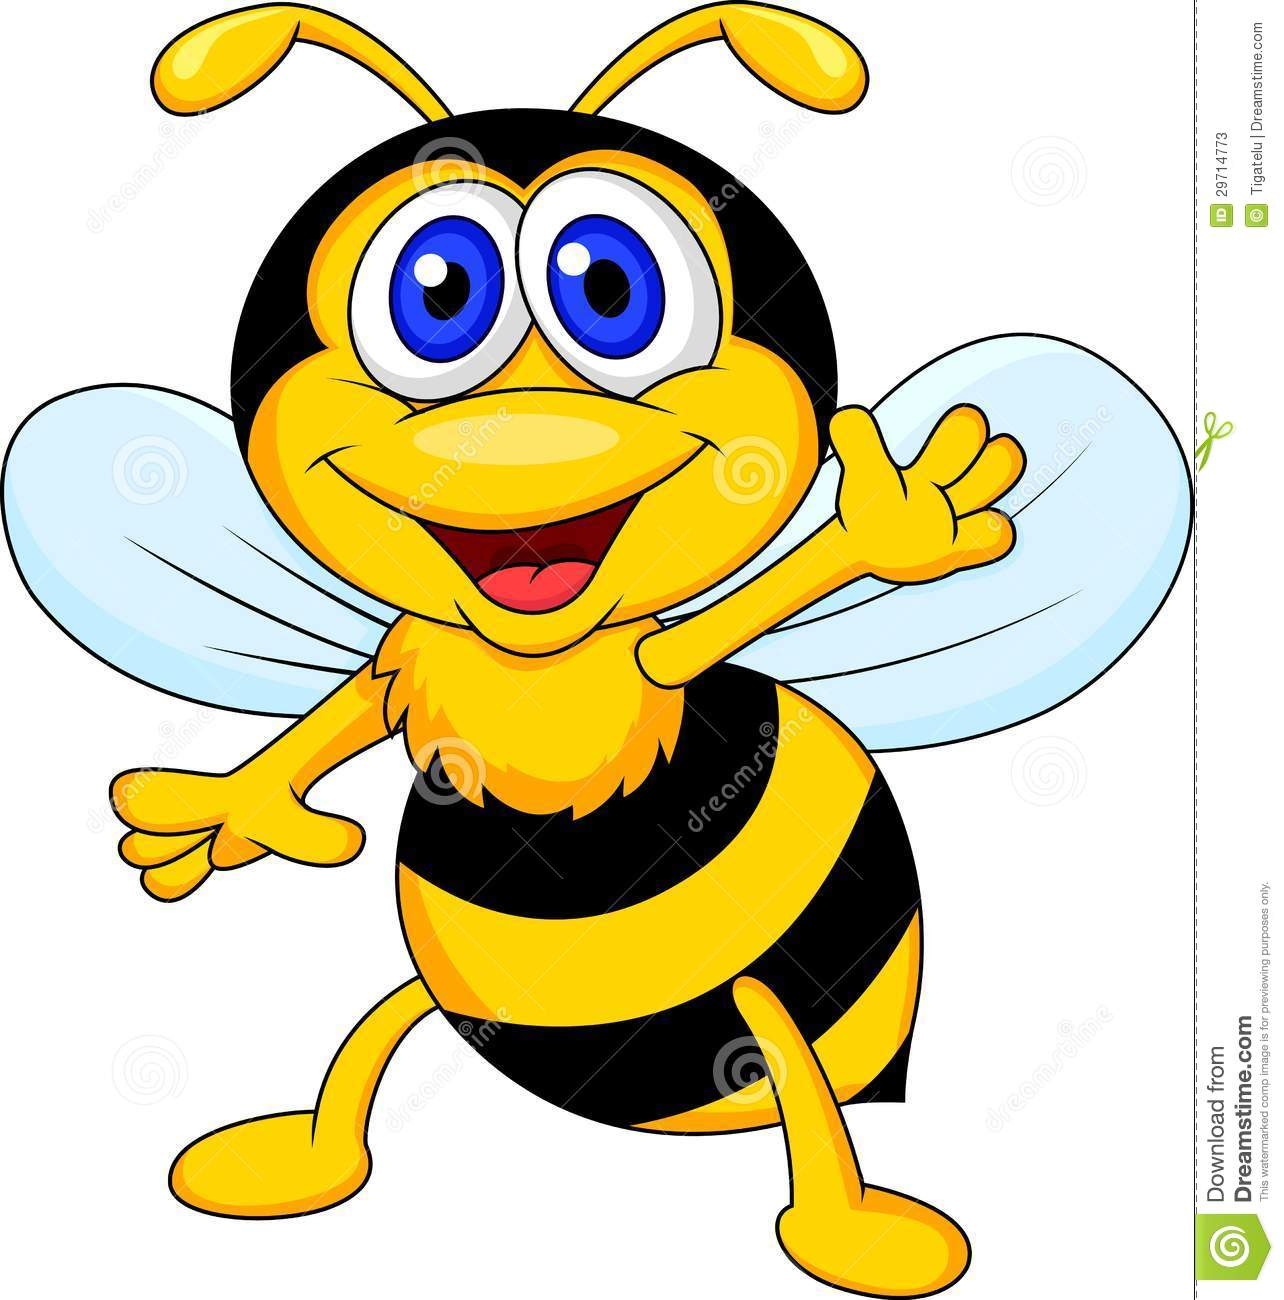 Funny Bee Cartoon Waving Stock Photos - Image: 29714773